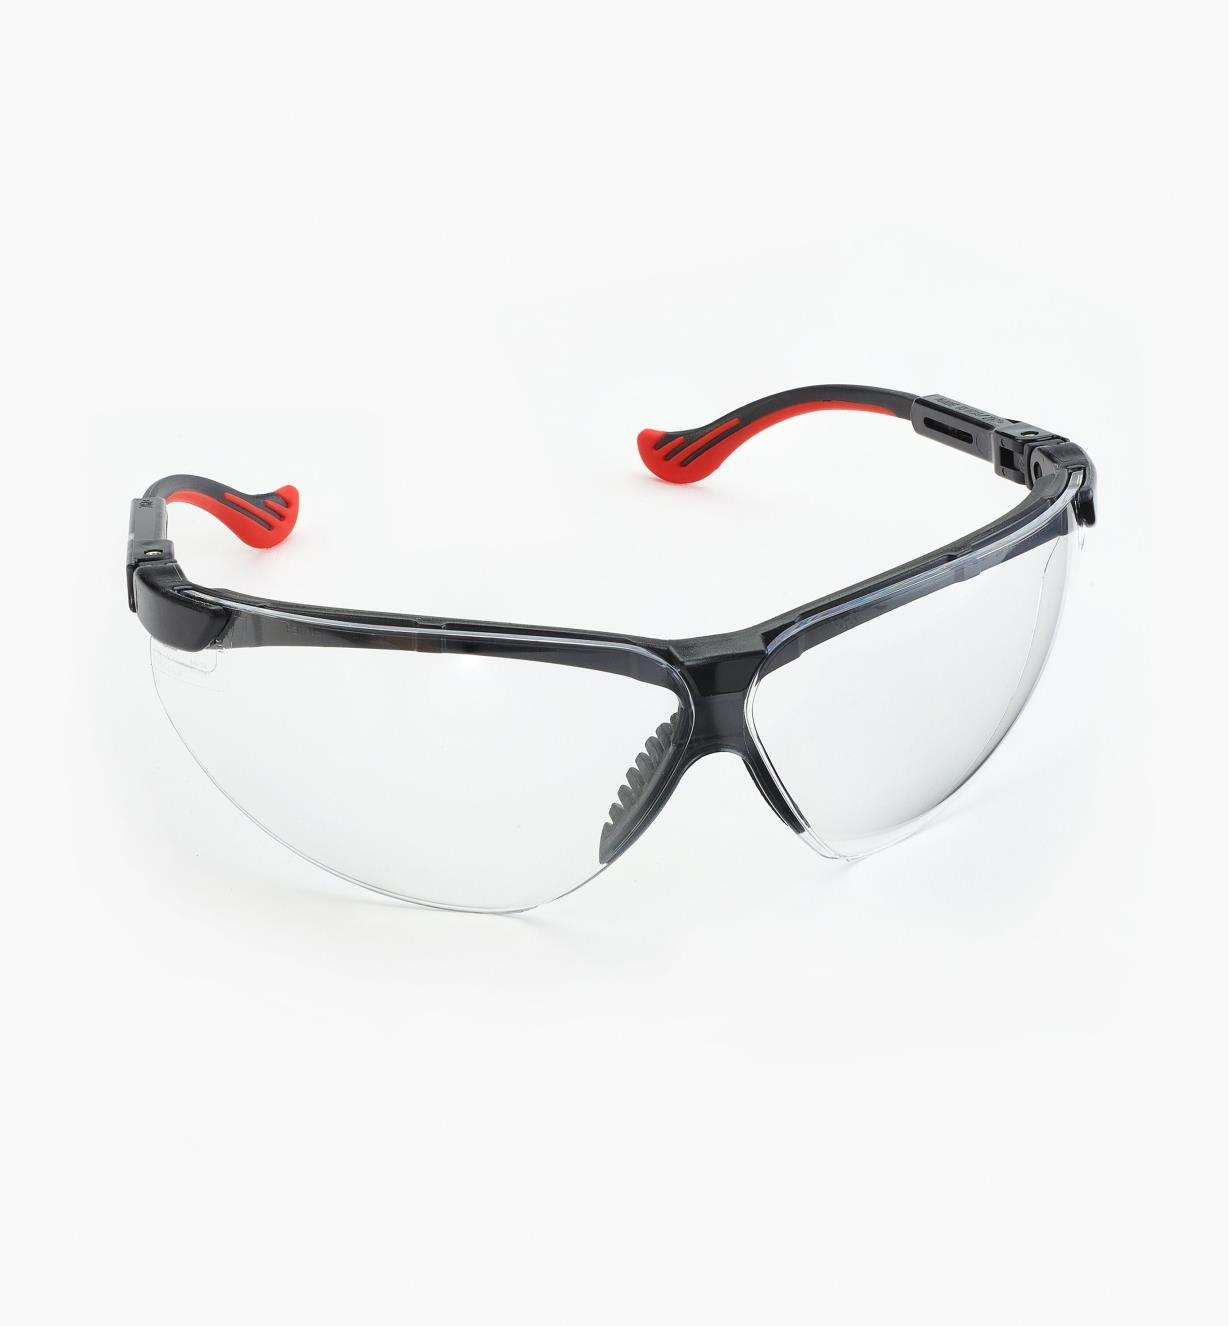 22R7240 - Professional Safety Glasses